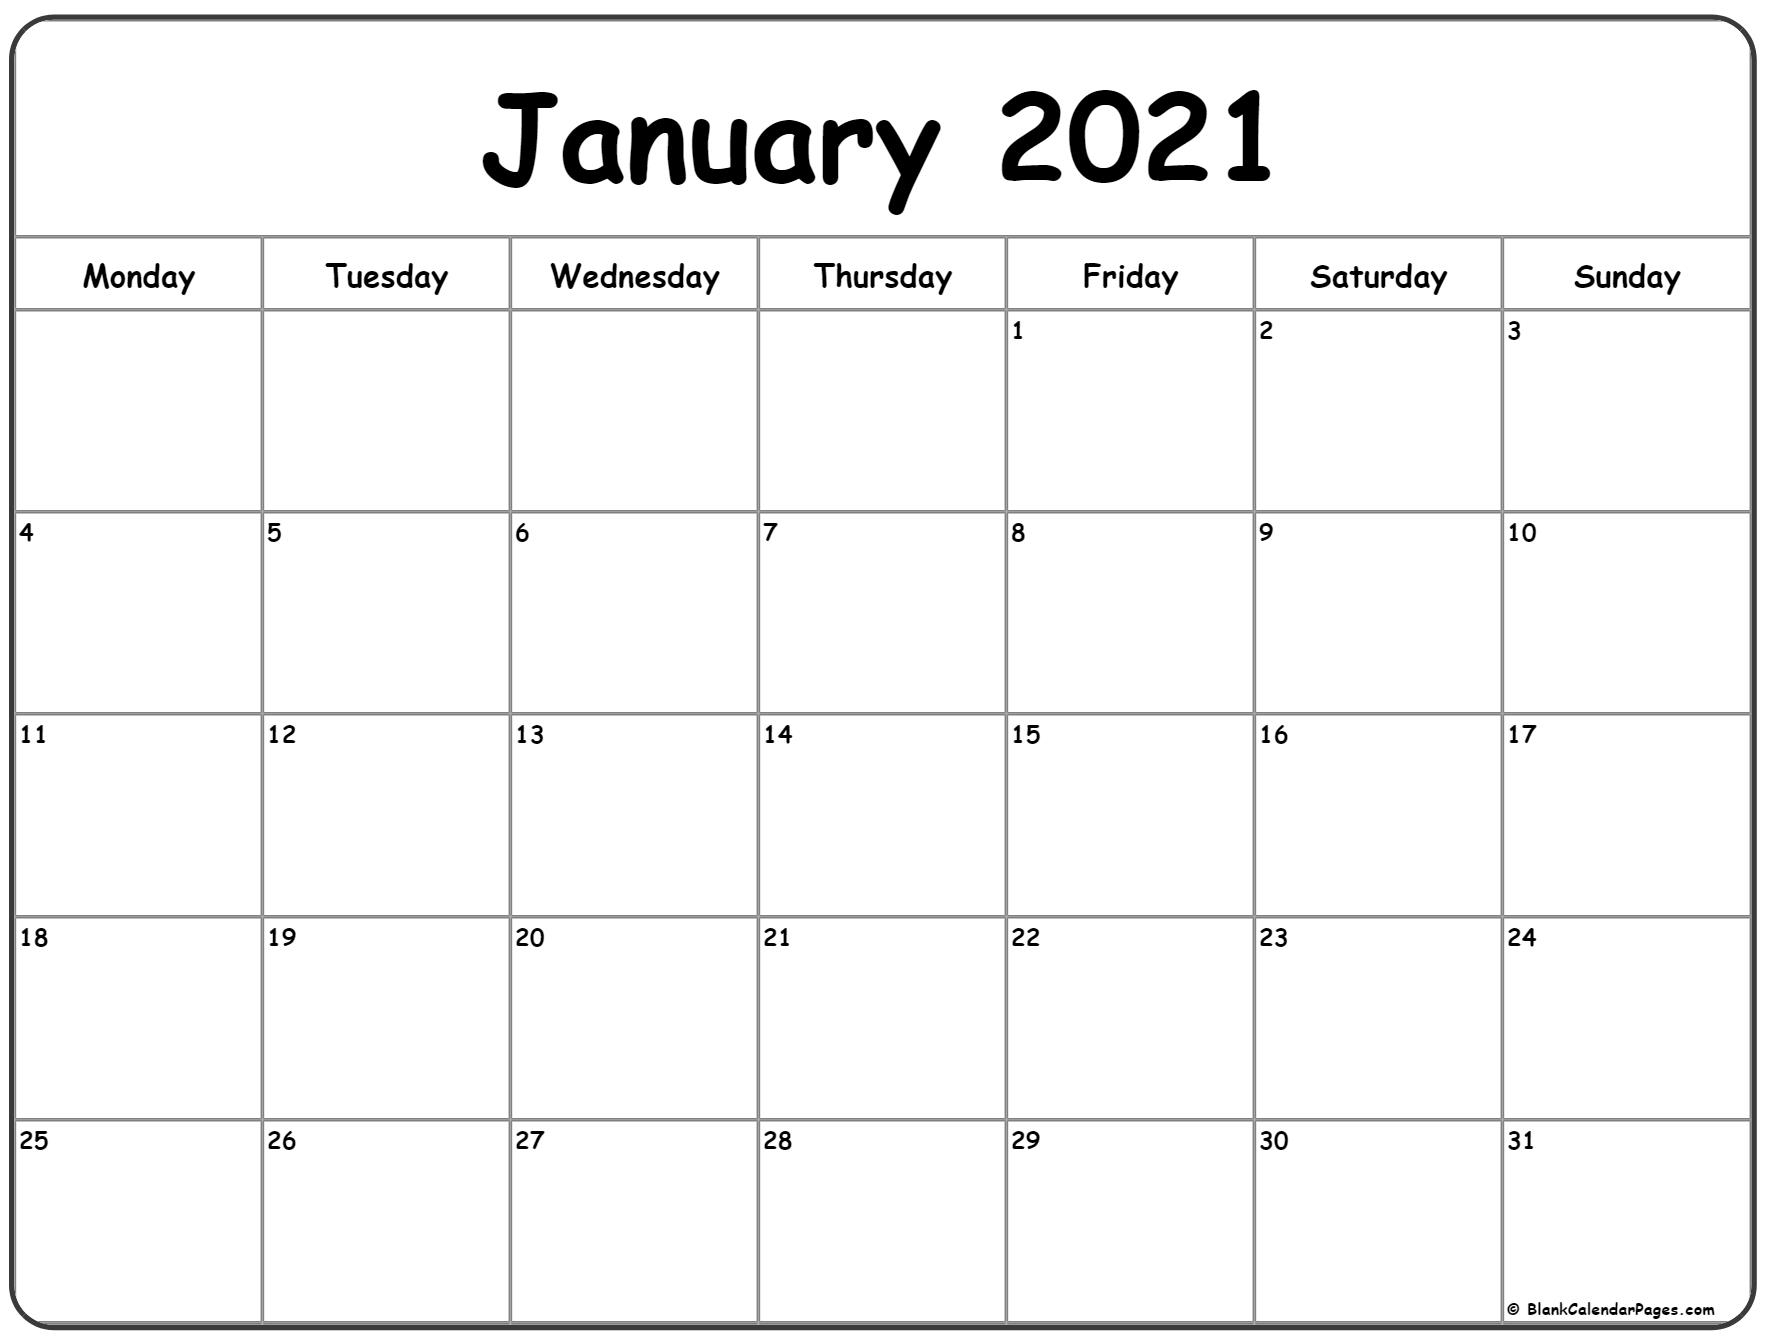 Pick 2021 Calendar Monday-Sunday